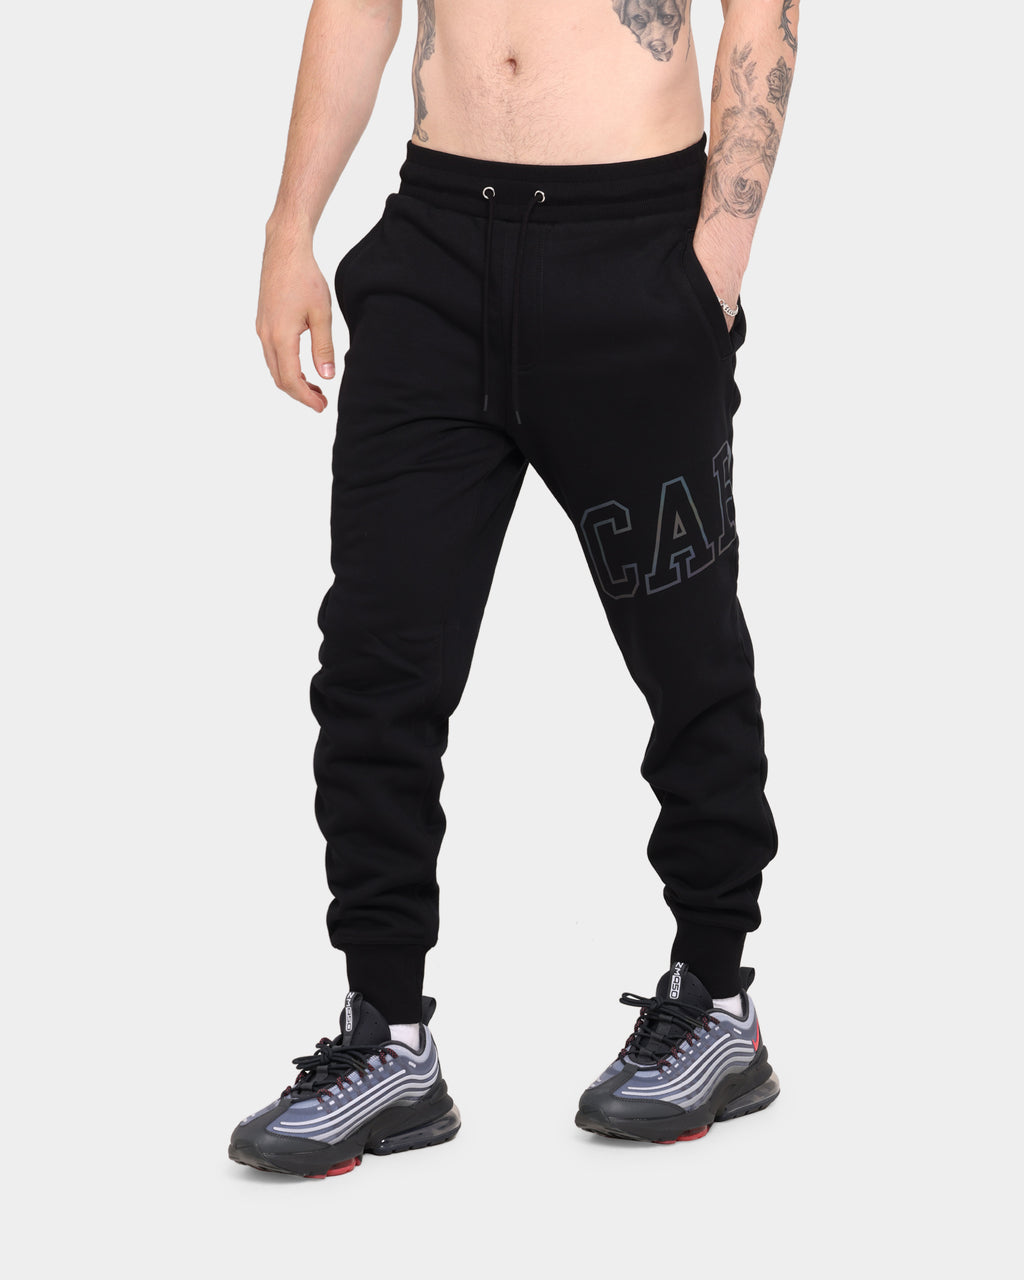 Carré Men's Enorme Reflective Sweatpant Black/3M Reflective